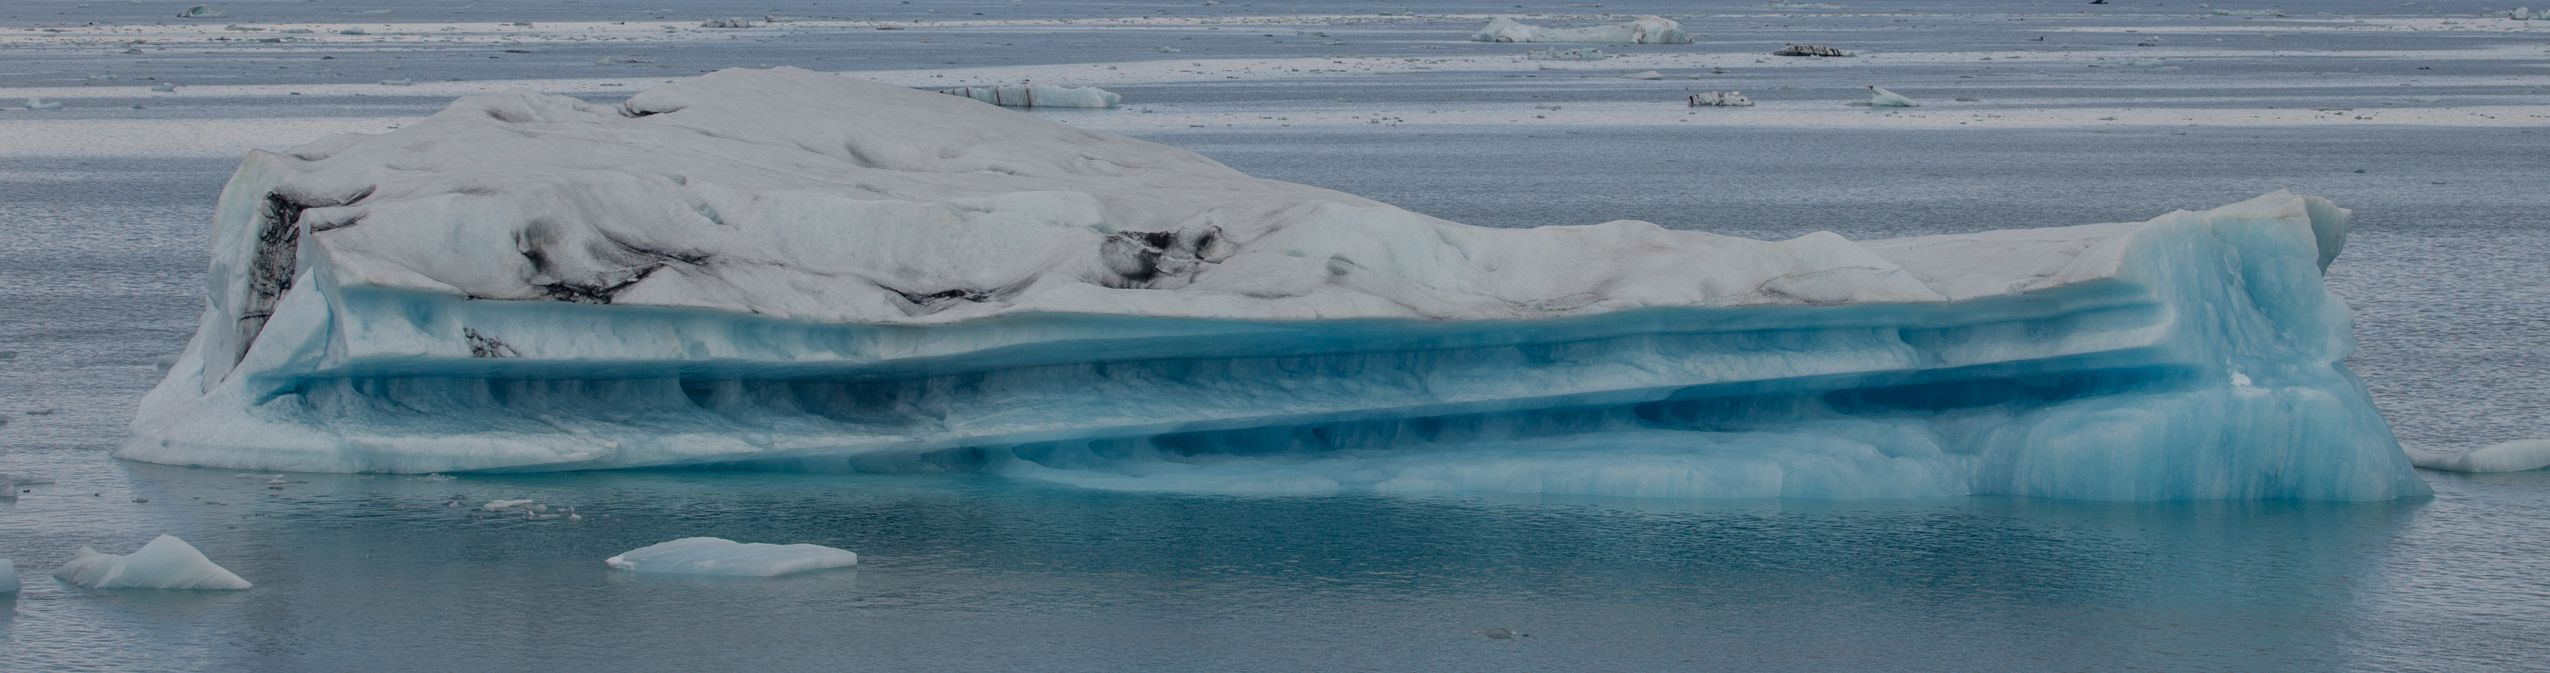 Iceberg at Jokulsarlon